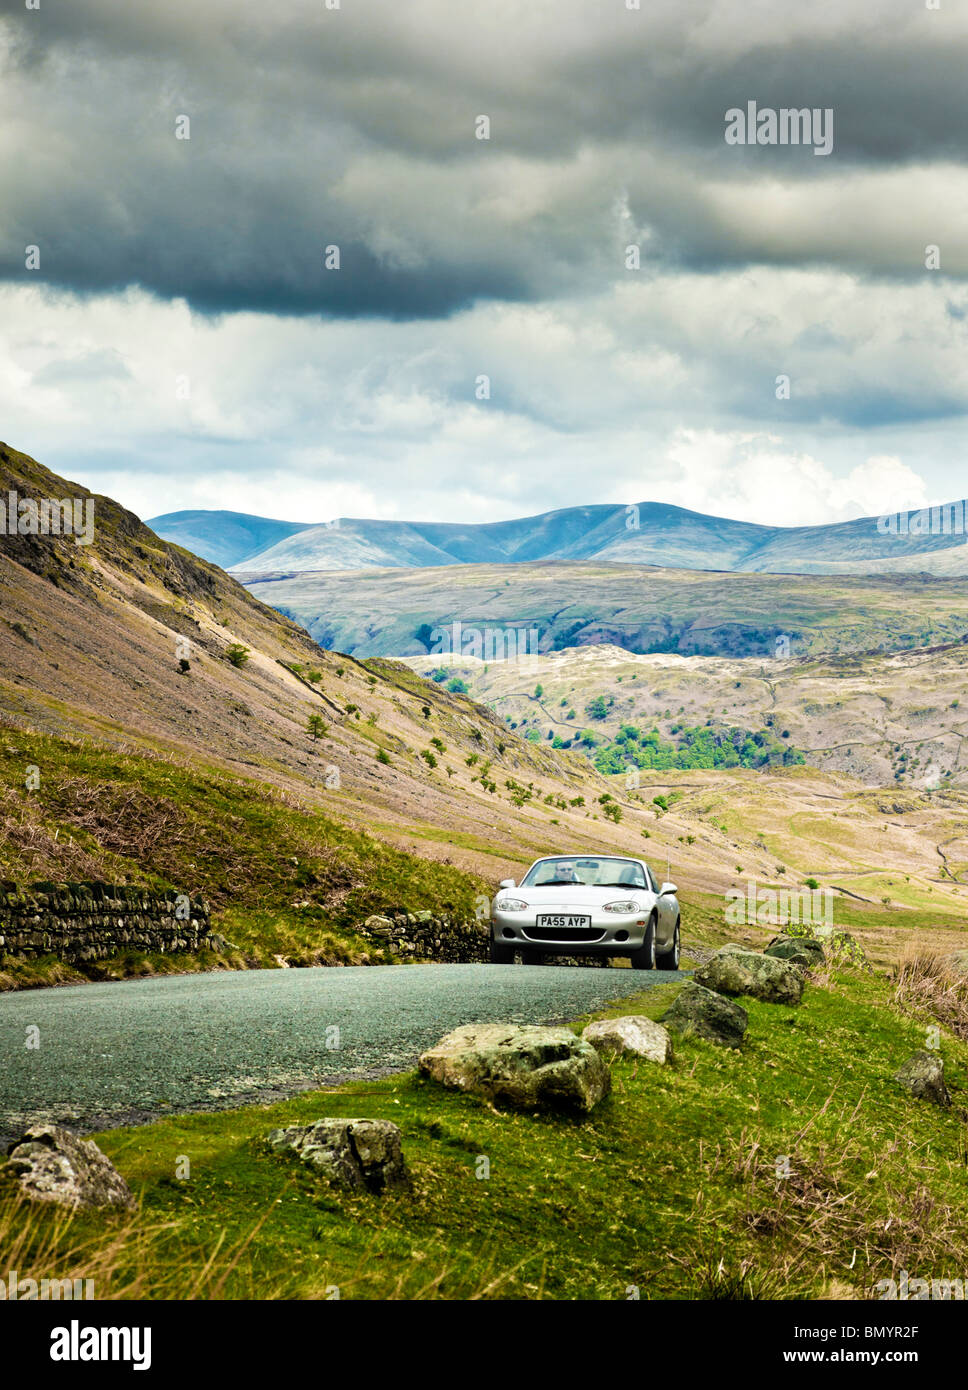 Driving, UK, Sports car driving on a mountain road in The Lake District, on a road trip in Cumbria, England, UK - Stock Image